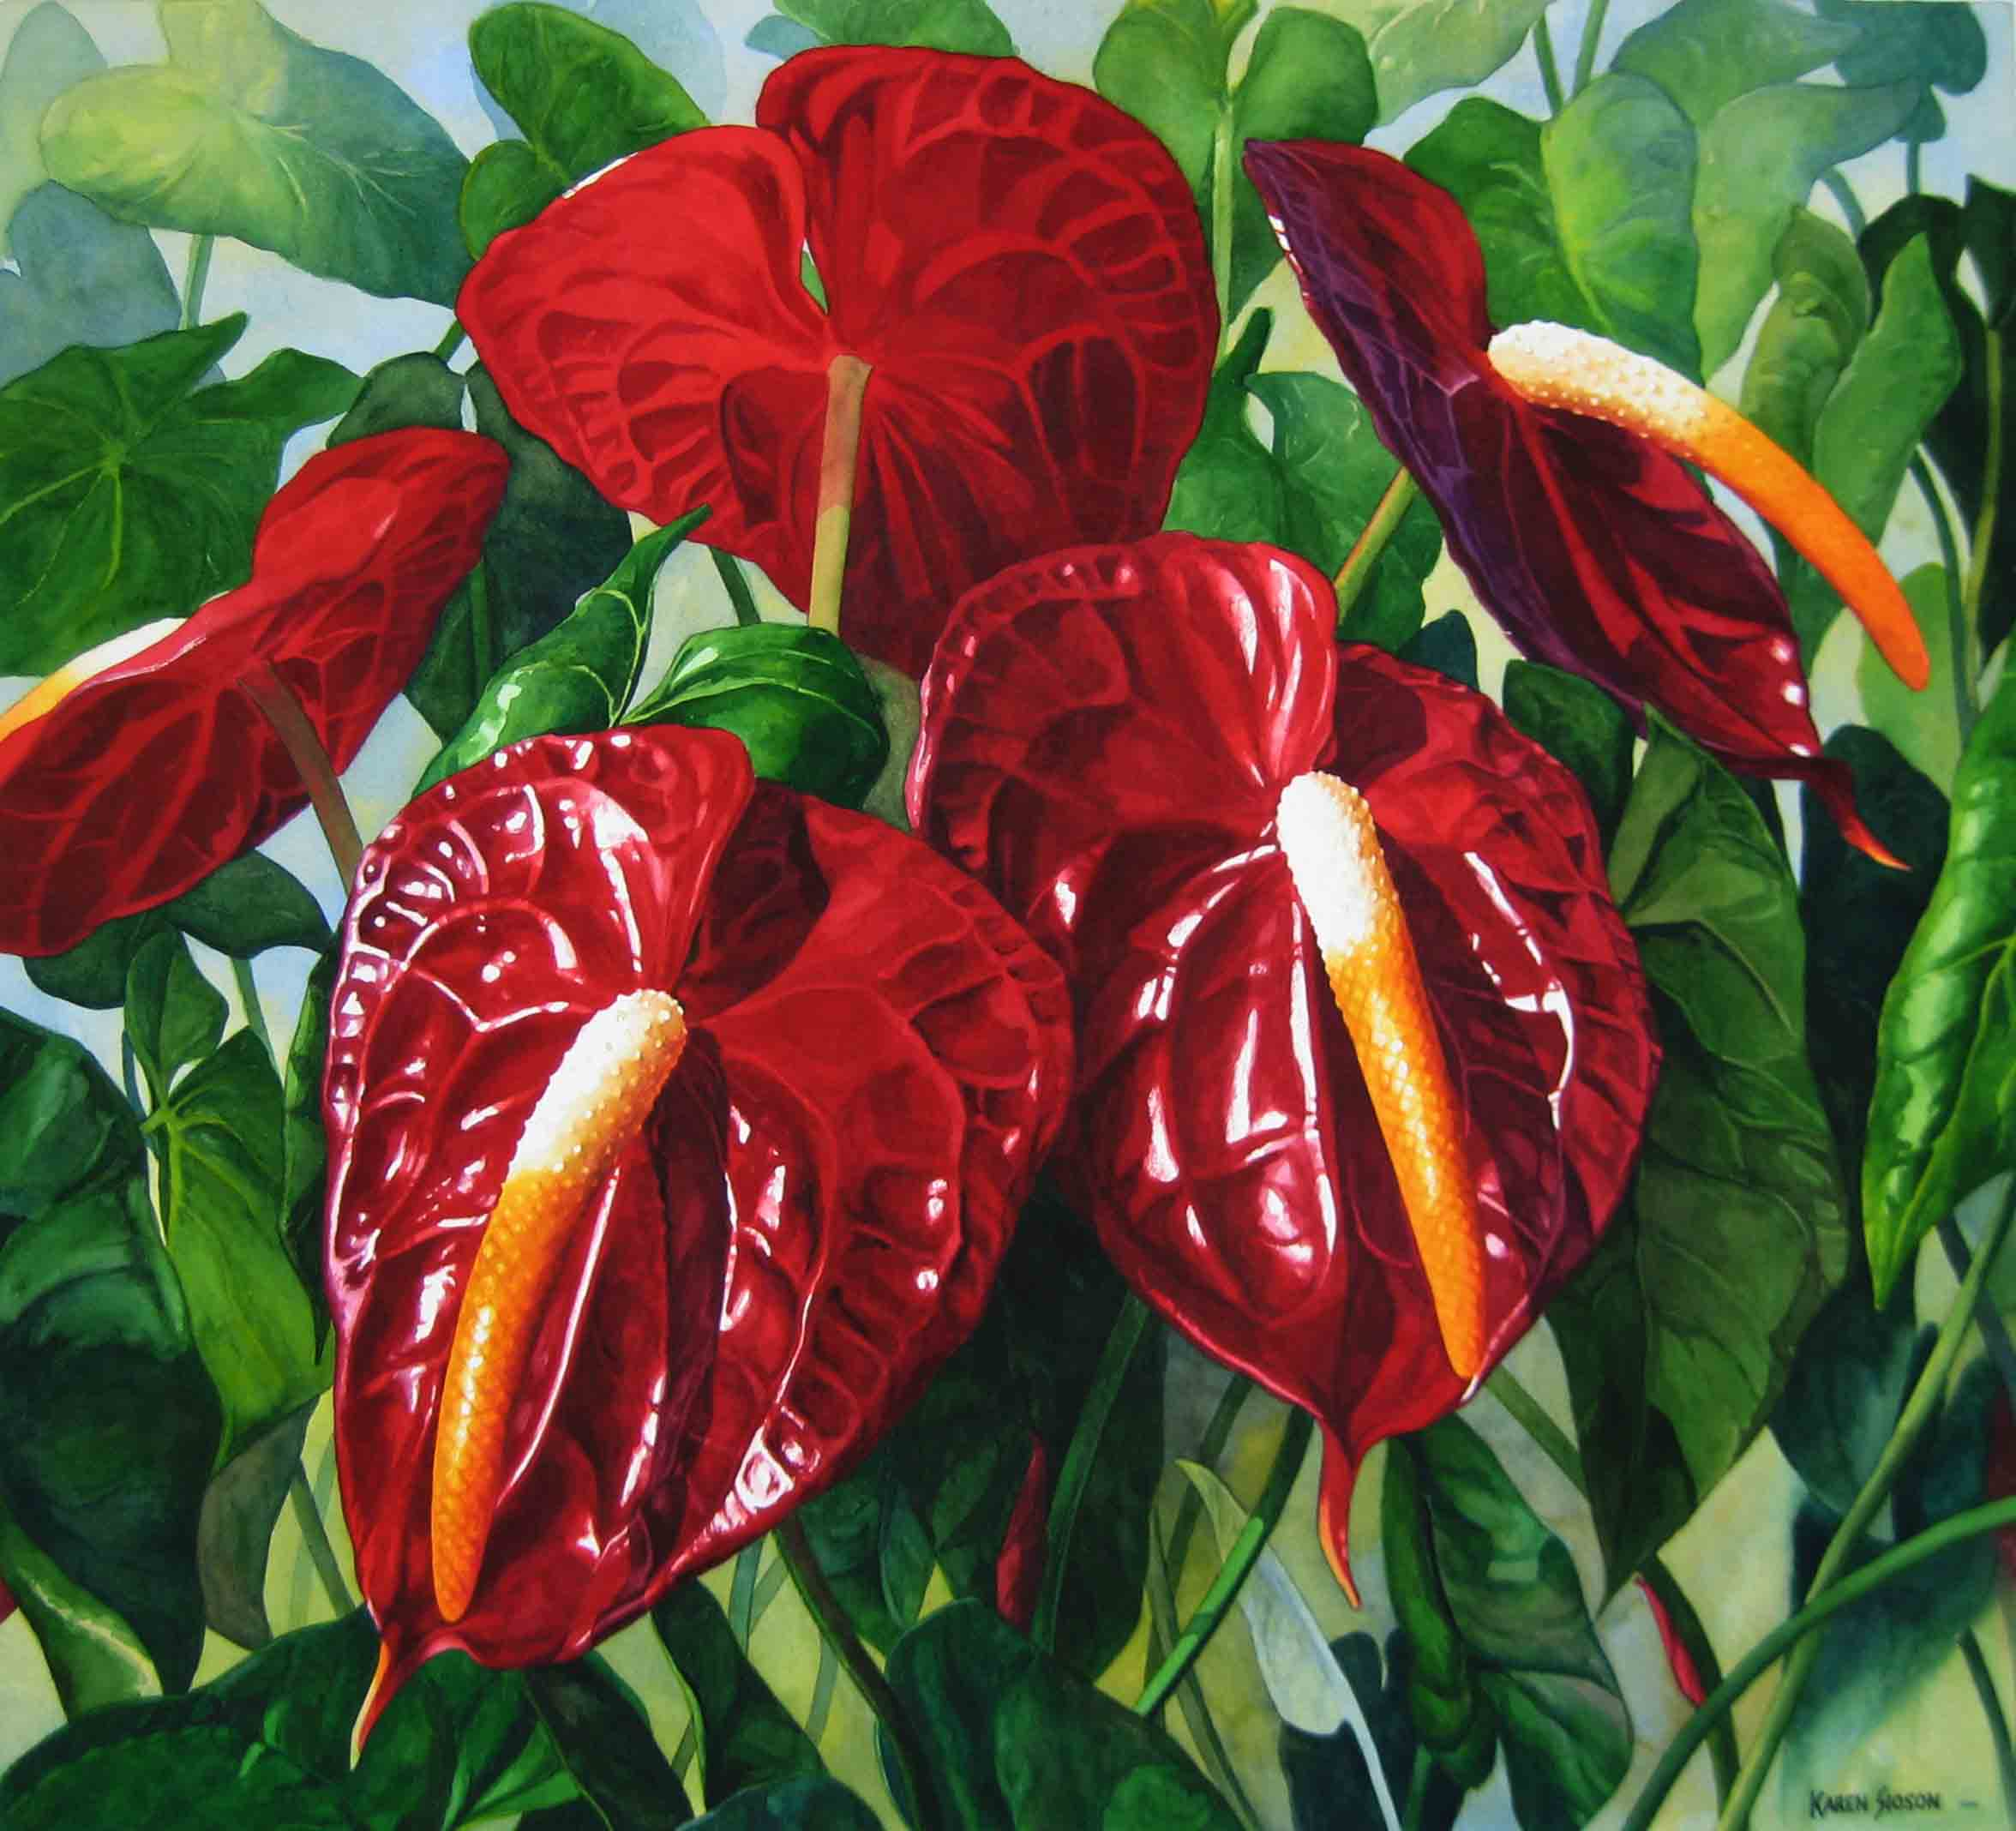 karensioson_red_anthuriums